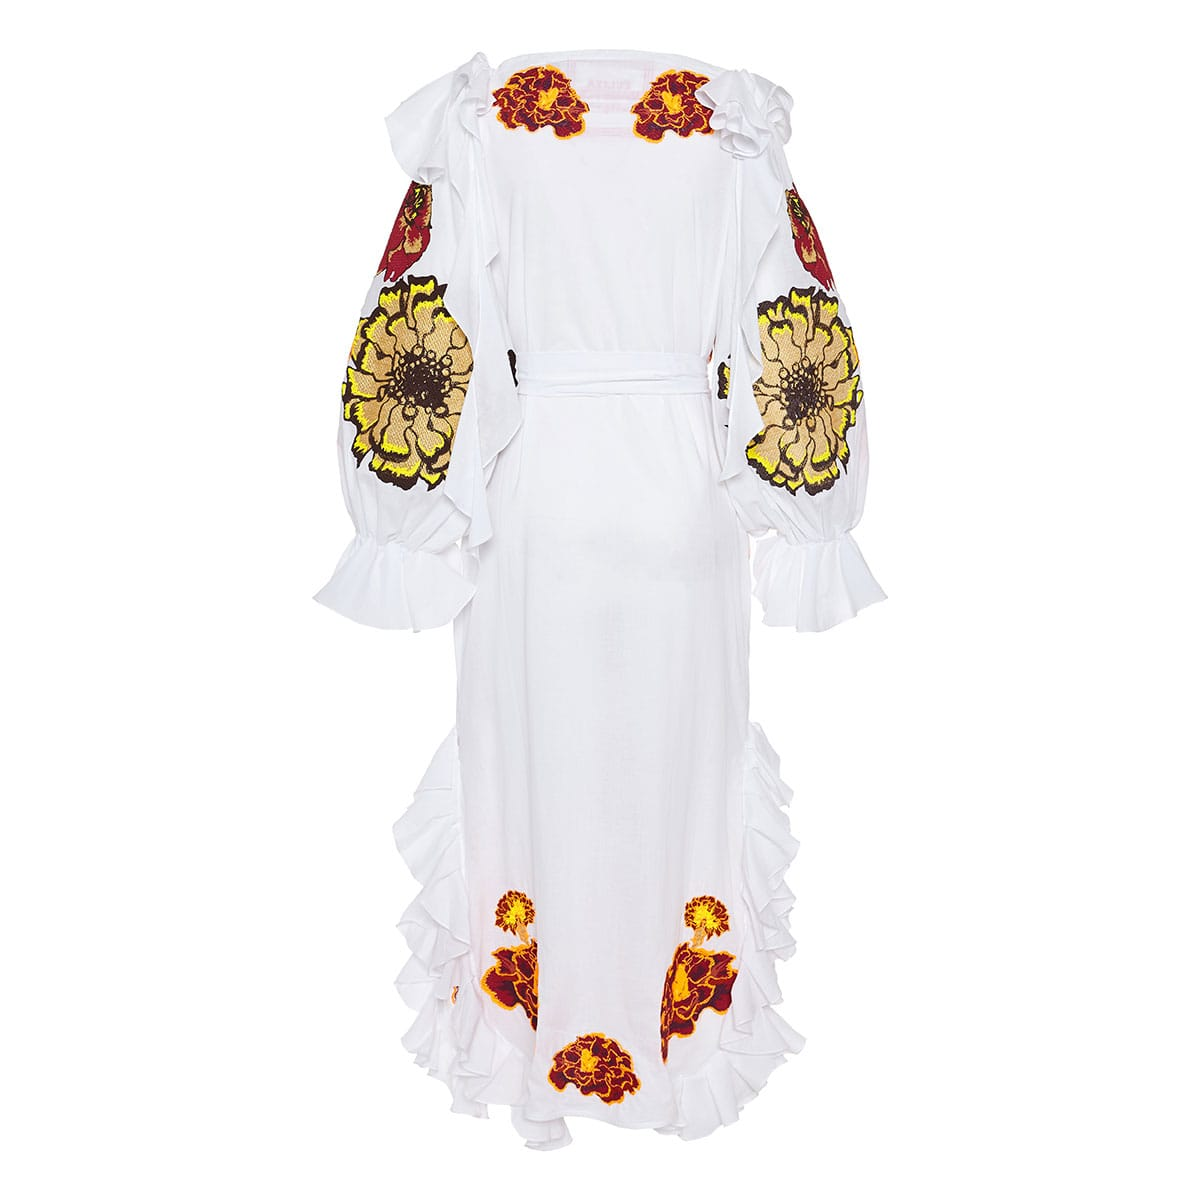 Marigold embroidered long ruffled dress